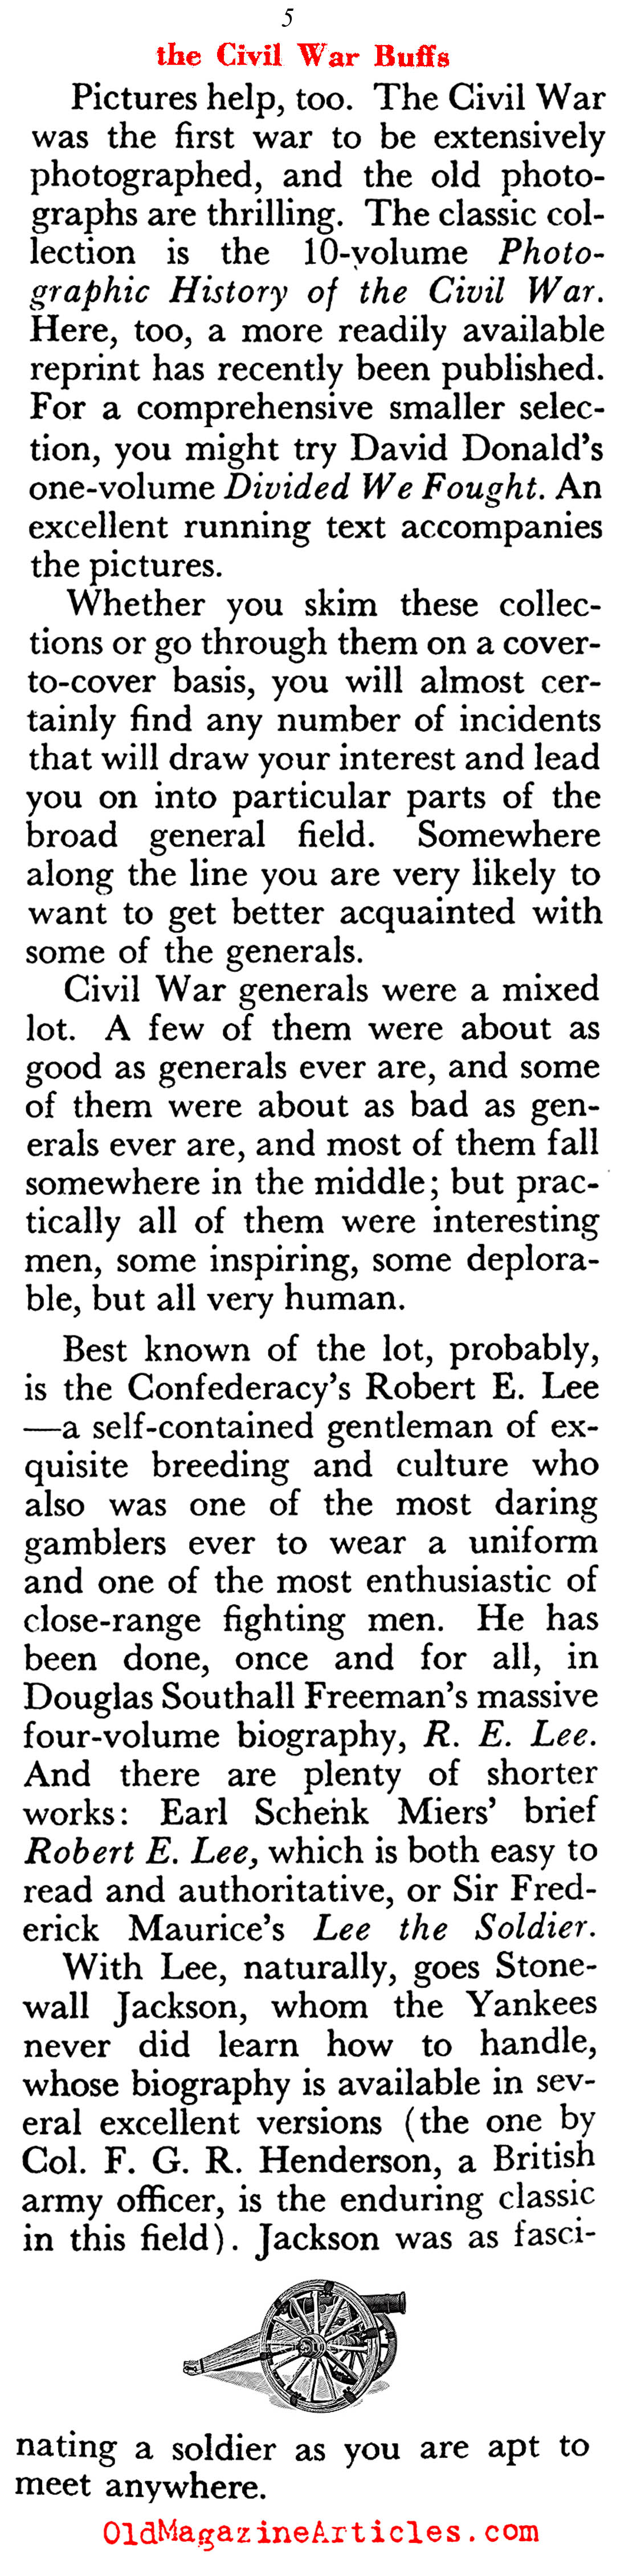 ''Beginner's Guide to the Civil War'' (Pageant Magazine, 1958)